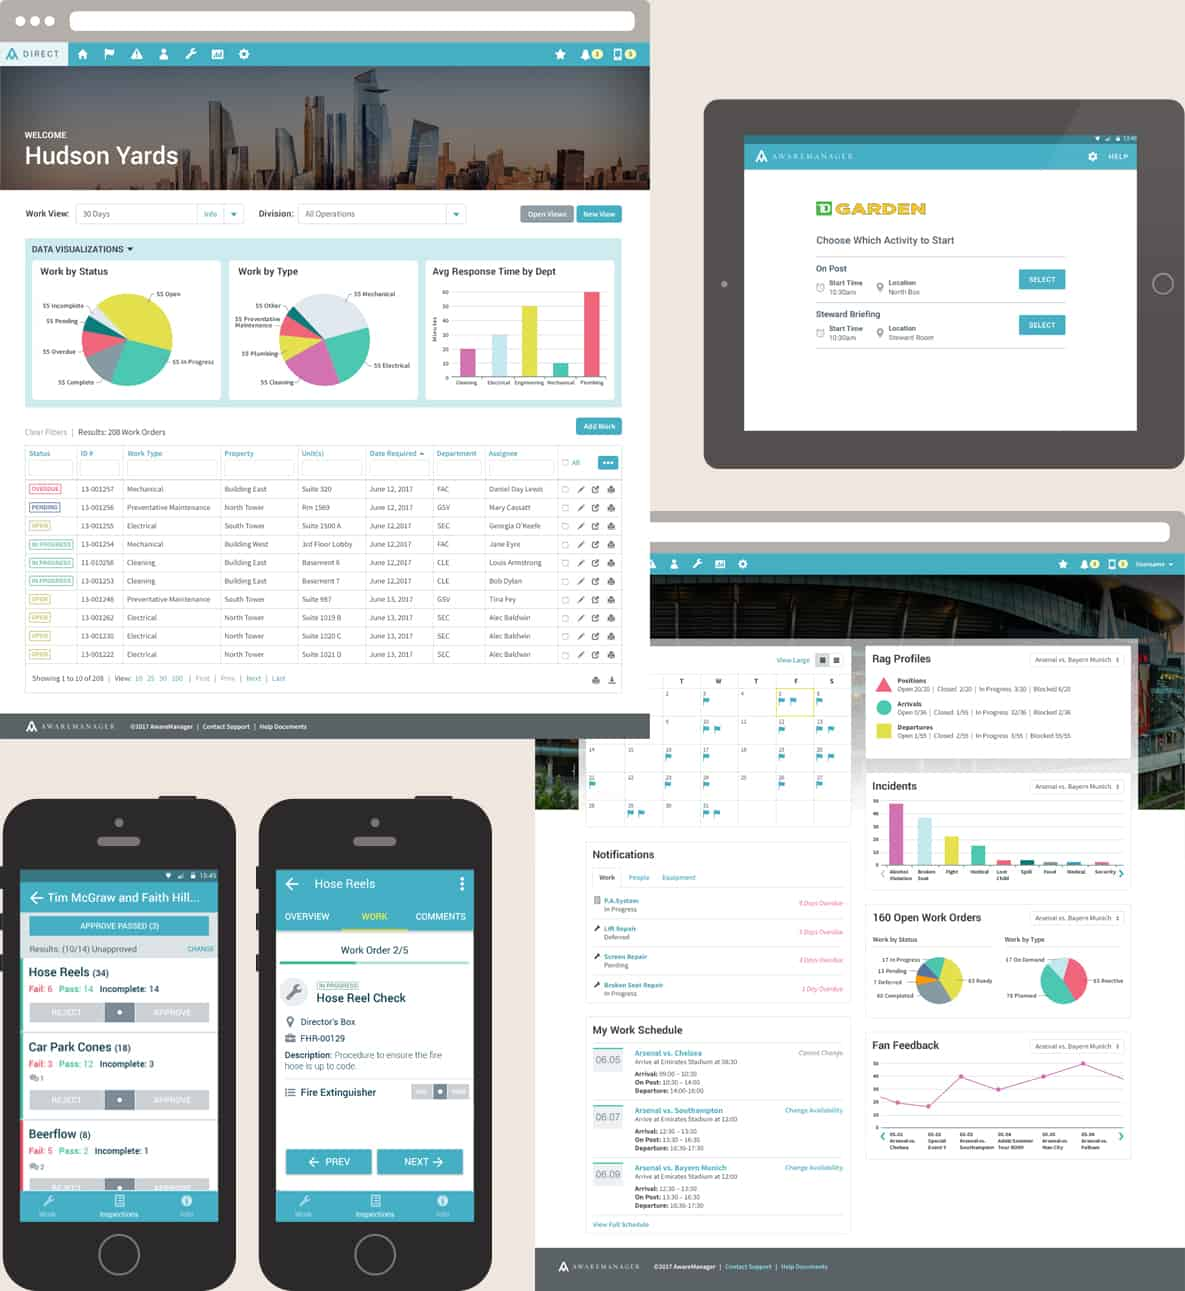 Digital designs of AwareManager's product